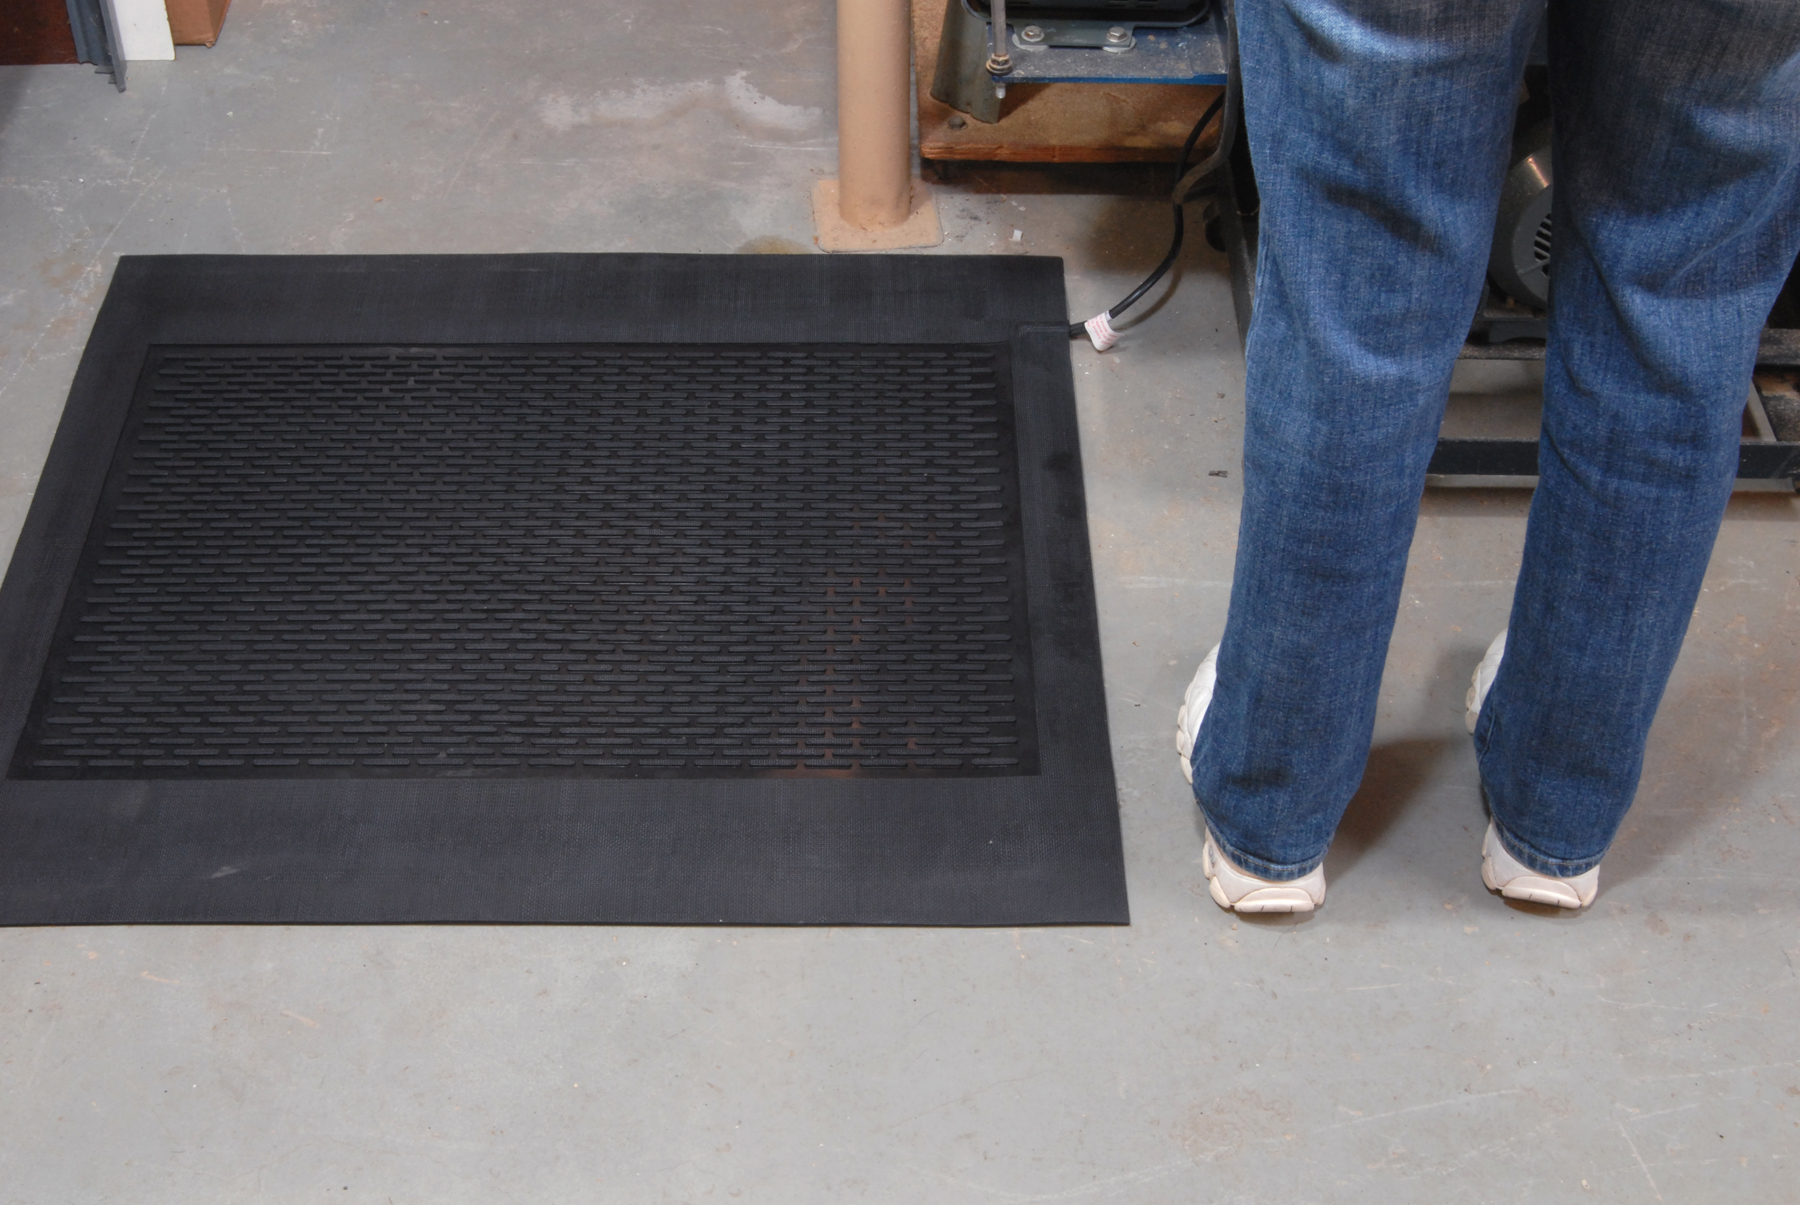 MartinsonNicholls New Heated Work Mats Replace Space